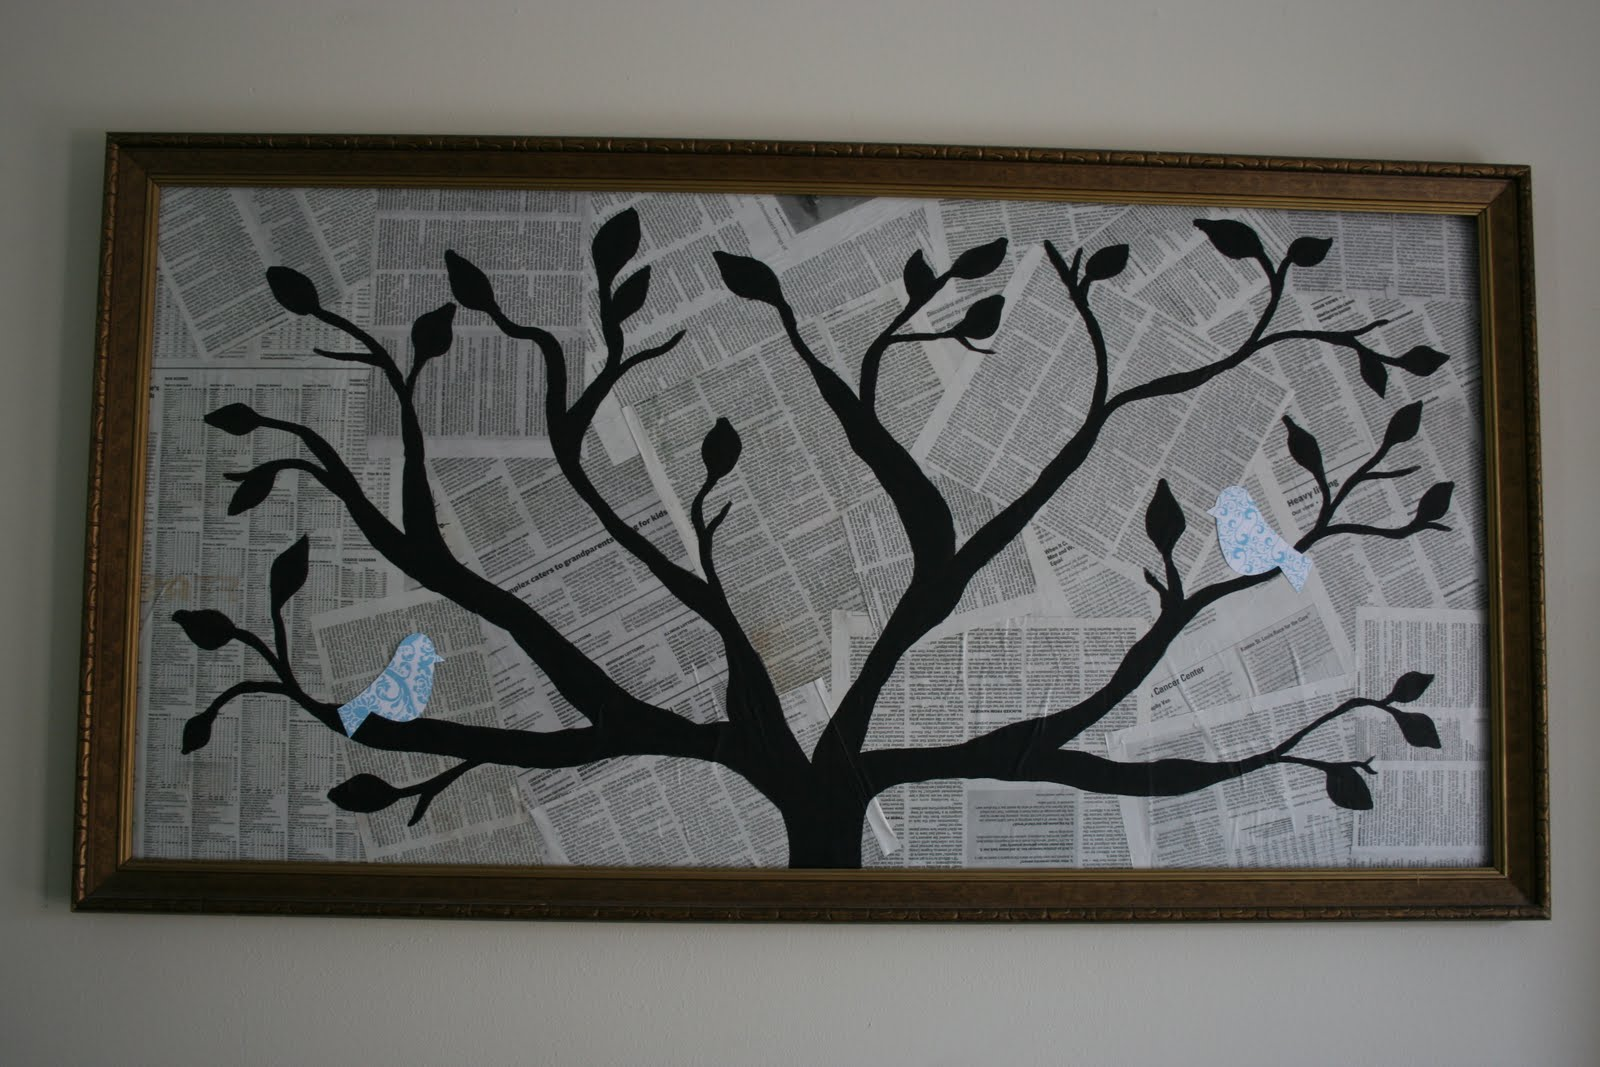 Tree Silhouette Painting On Wall | www.pixshark.com ...